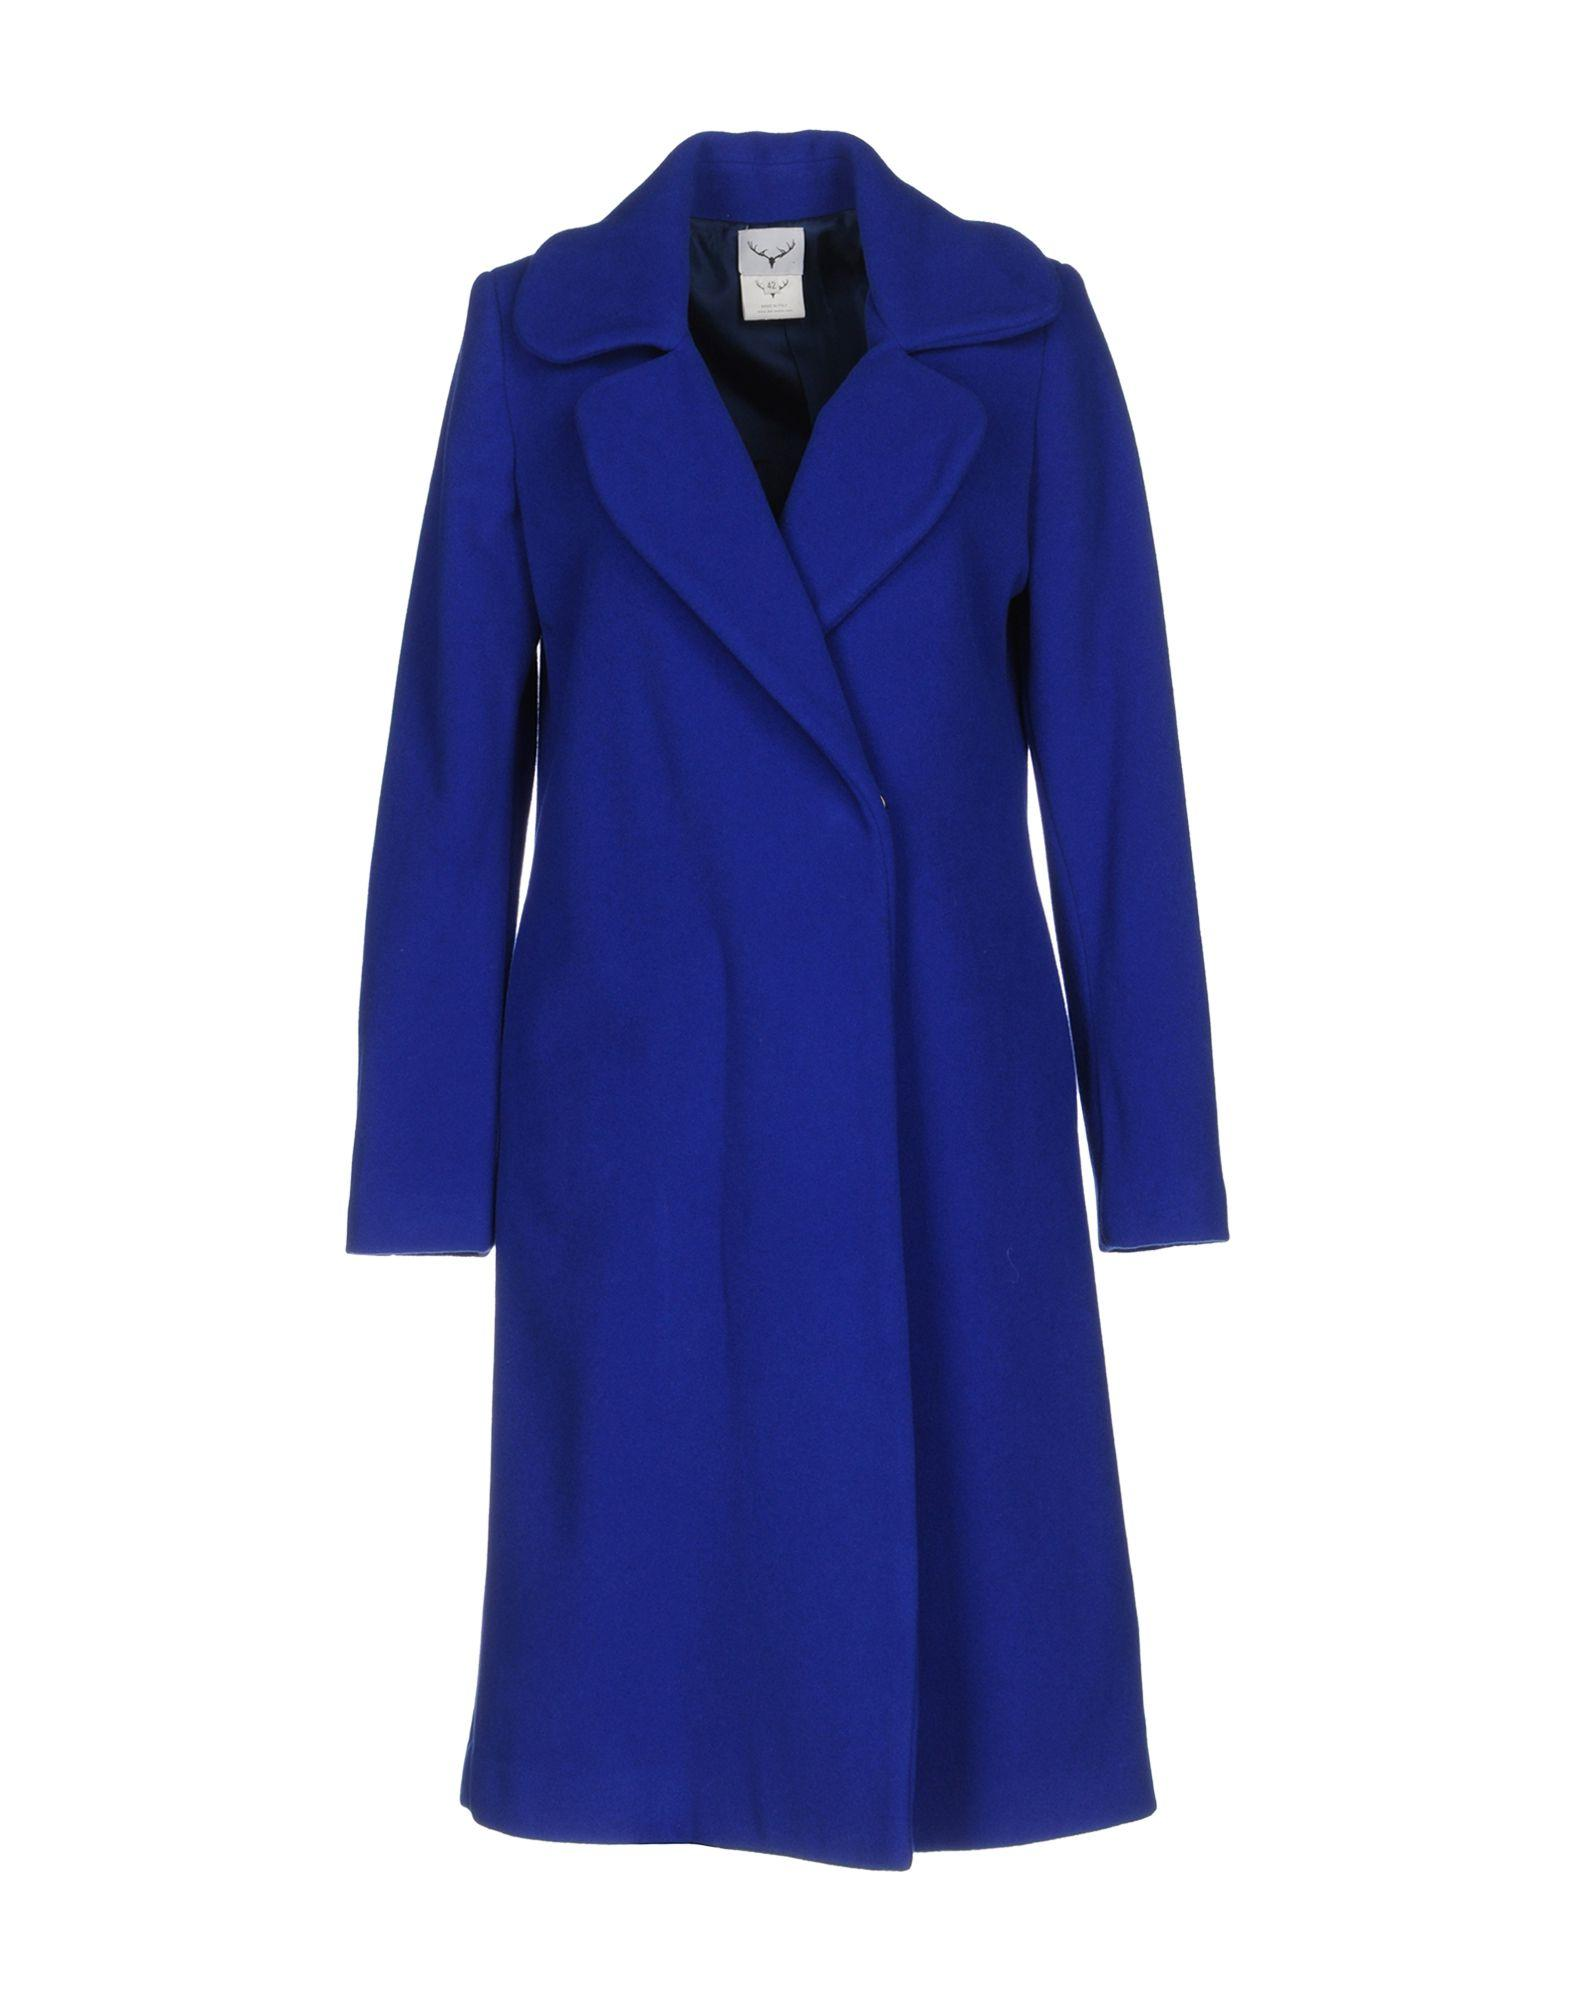 Leitmotiv Coats In Bright Blue